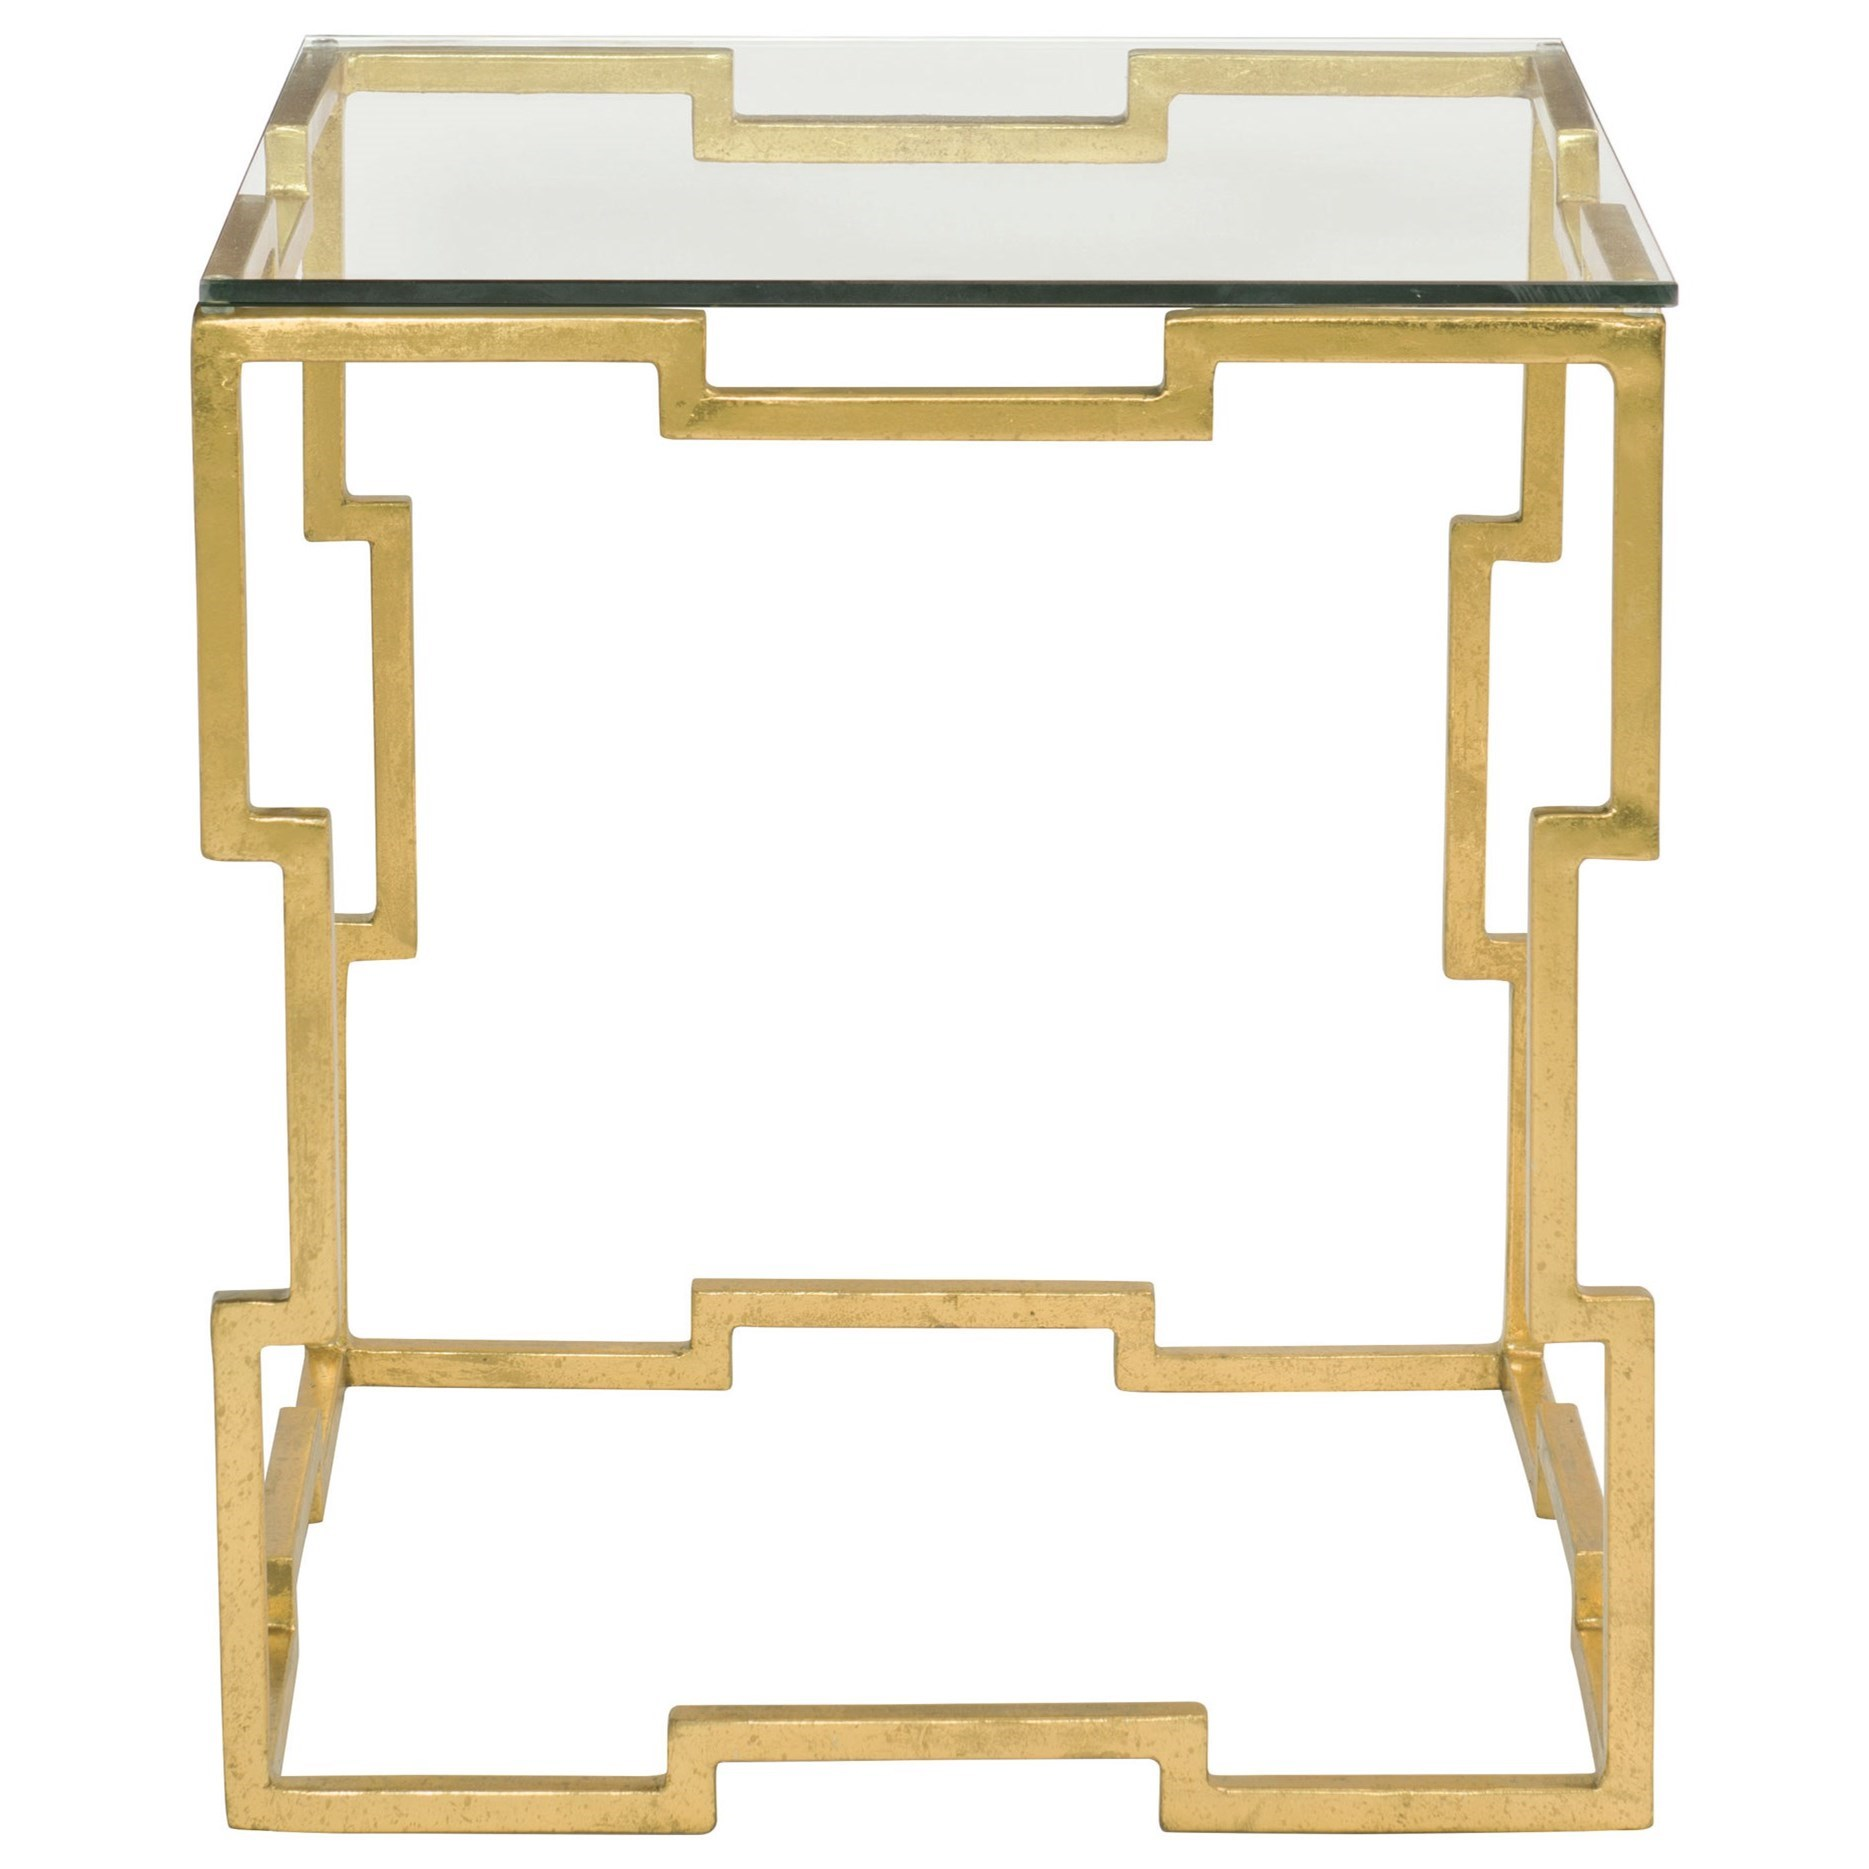 Bernhardt Bancroft Rectangular End Table With Glass Top And Metal Base Reeds Furniture End